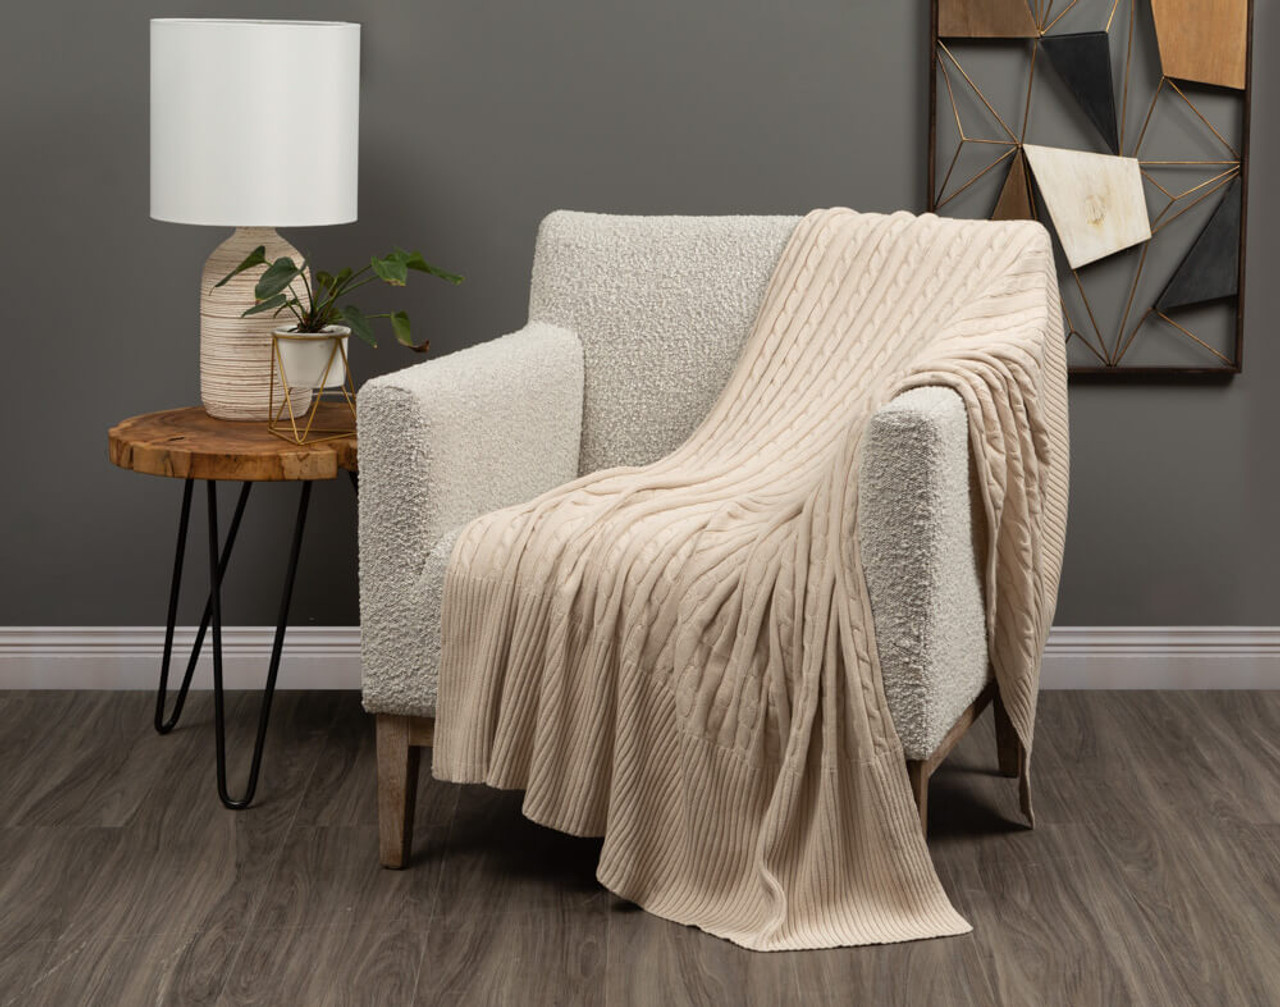 Cable Rib Knit Beige Throw in Natural draped over a living room chair.